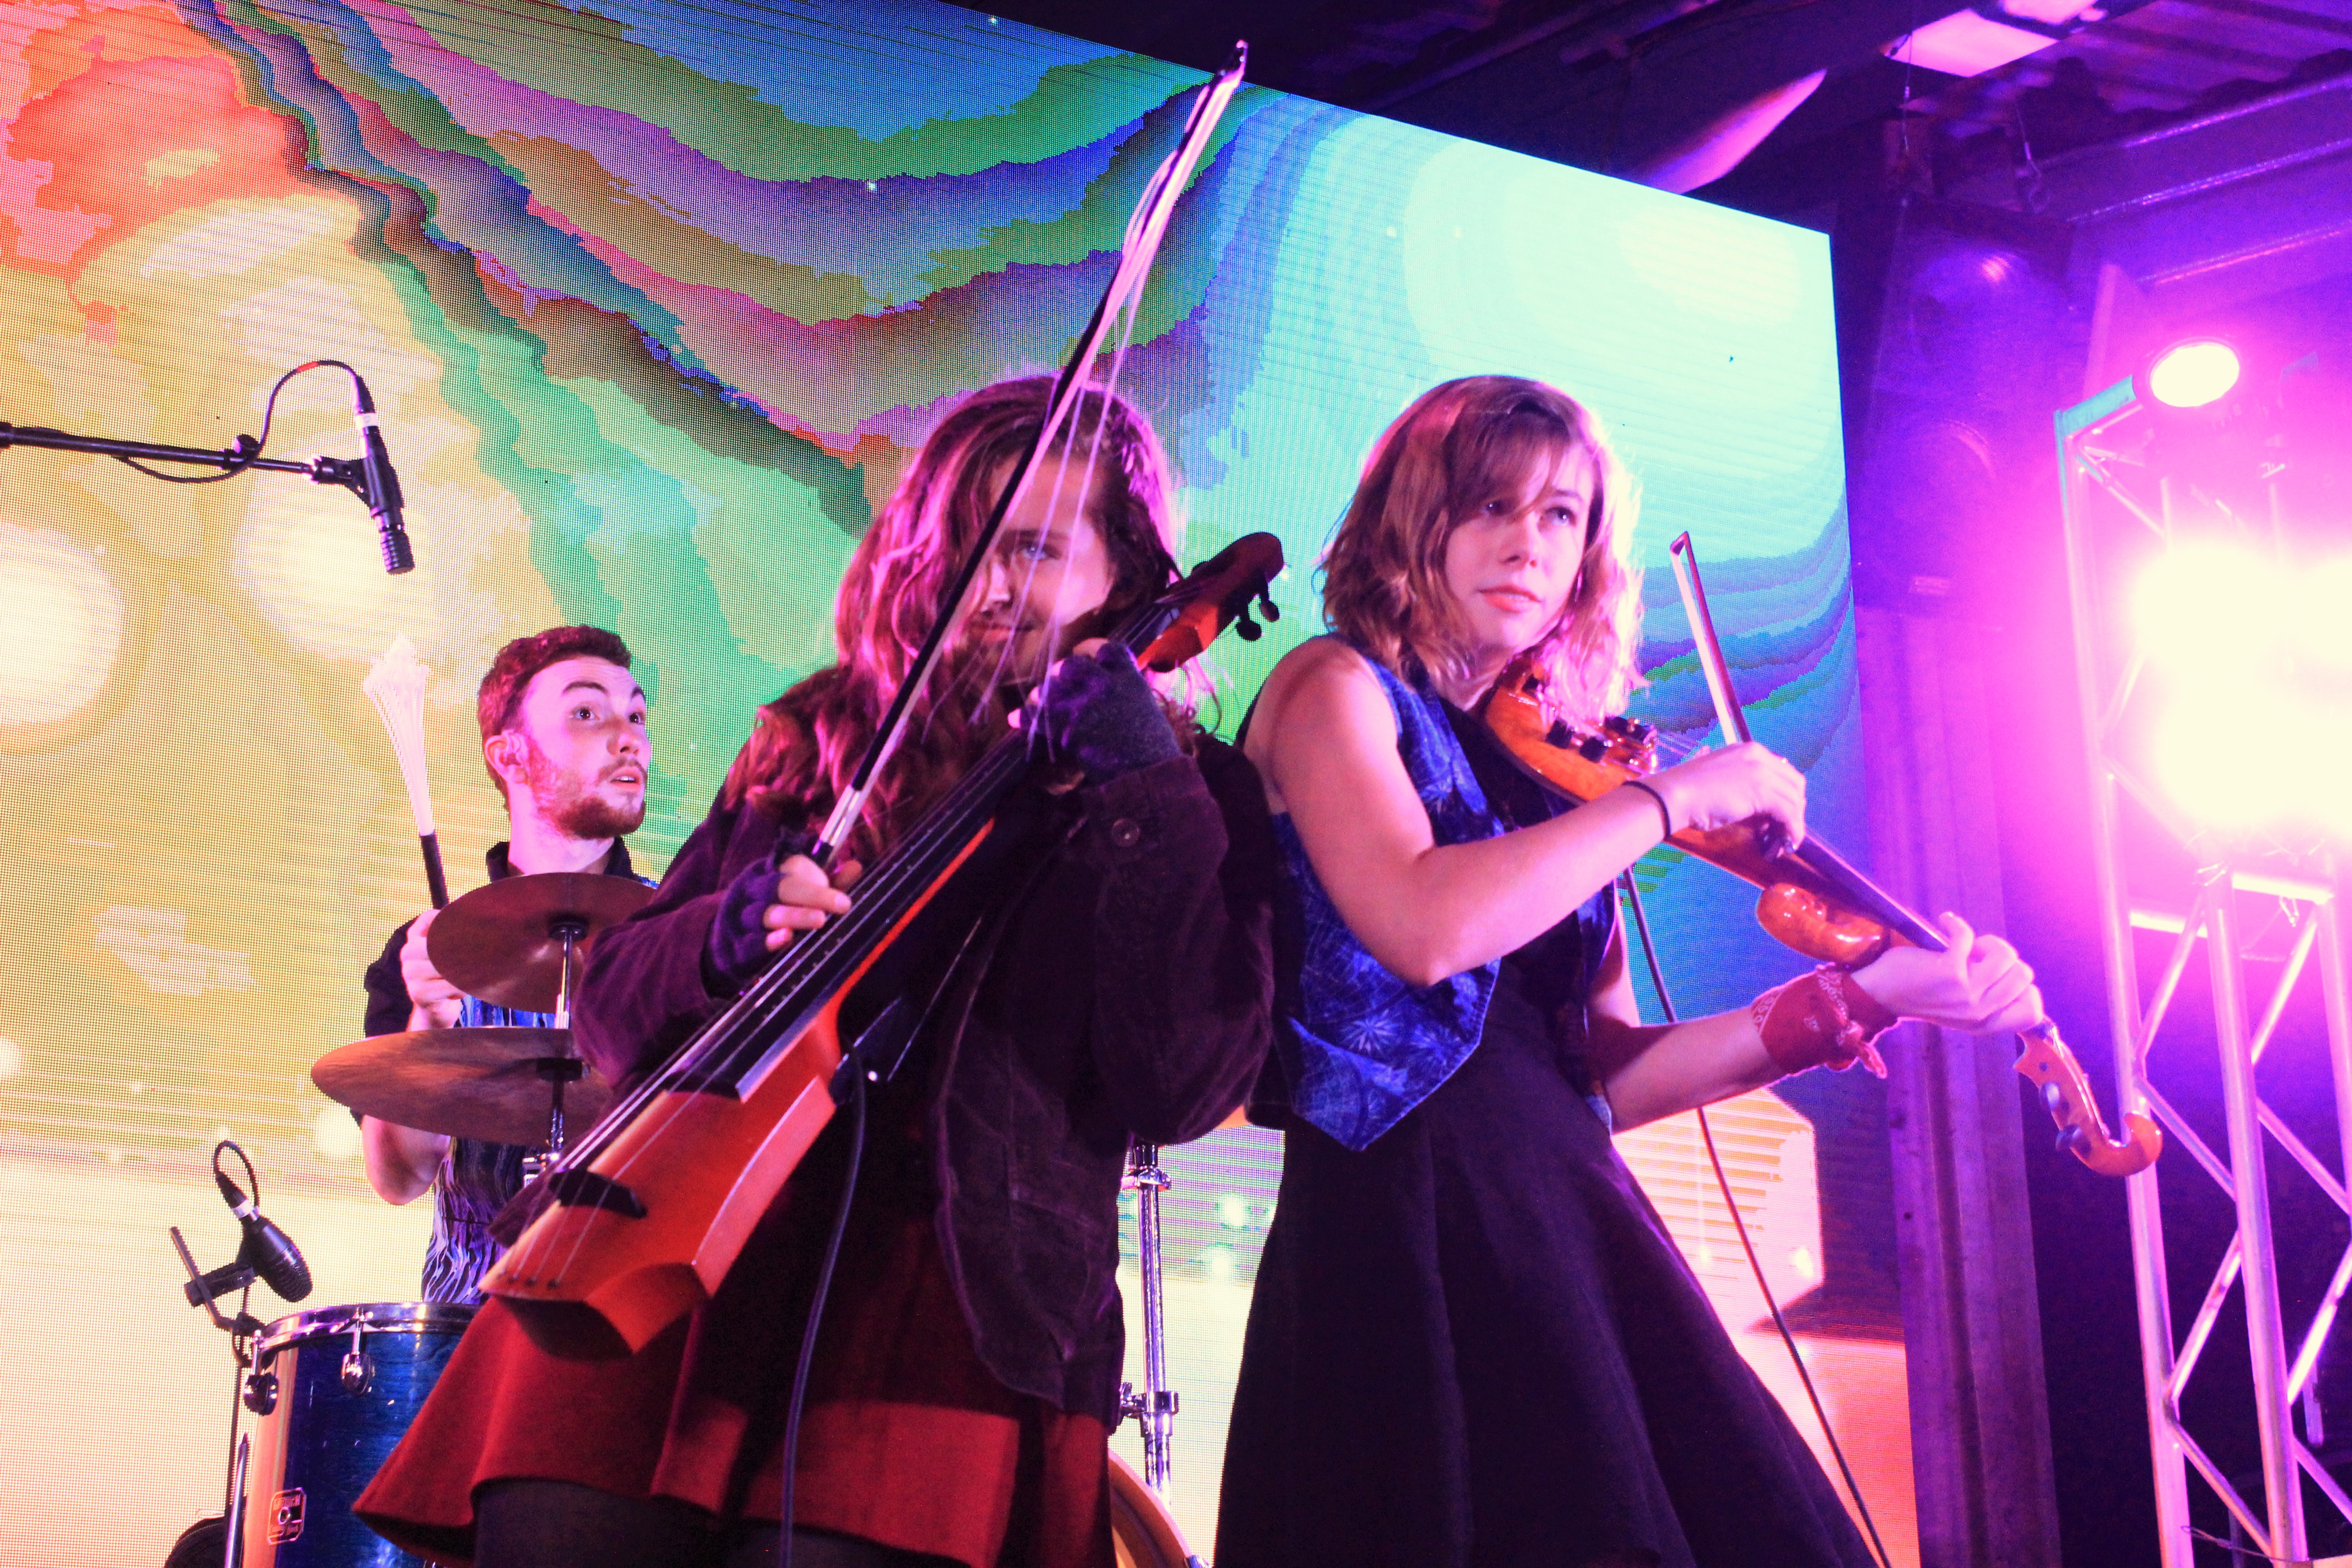 Celebrating ArtPrize: Traverse City's The Accidentals wrapped up the announcement of 2016 ArtPrize awards on Friday night at Rosa Parks Circle. (Photo/Anna Sink)